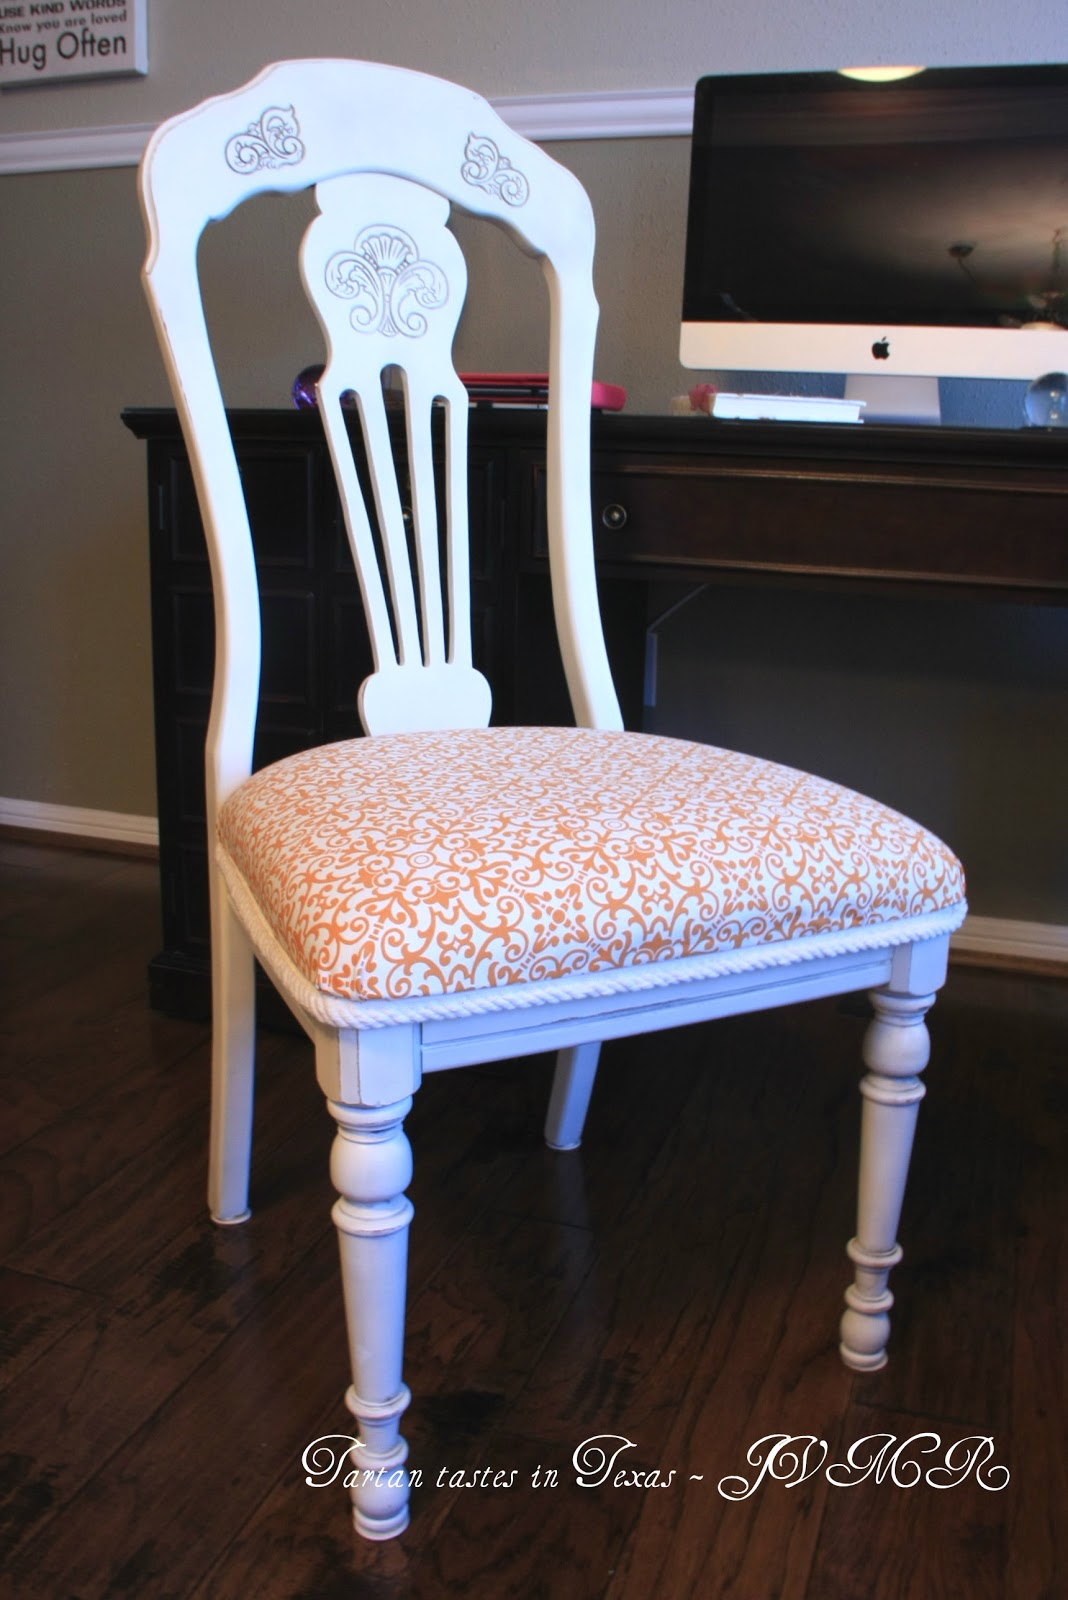 diy dining chairs makeover gel chair cushion tartan tastes in texas wordless weekend